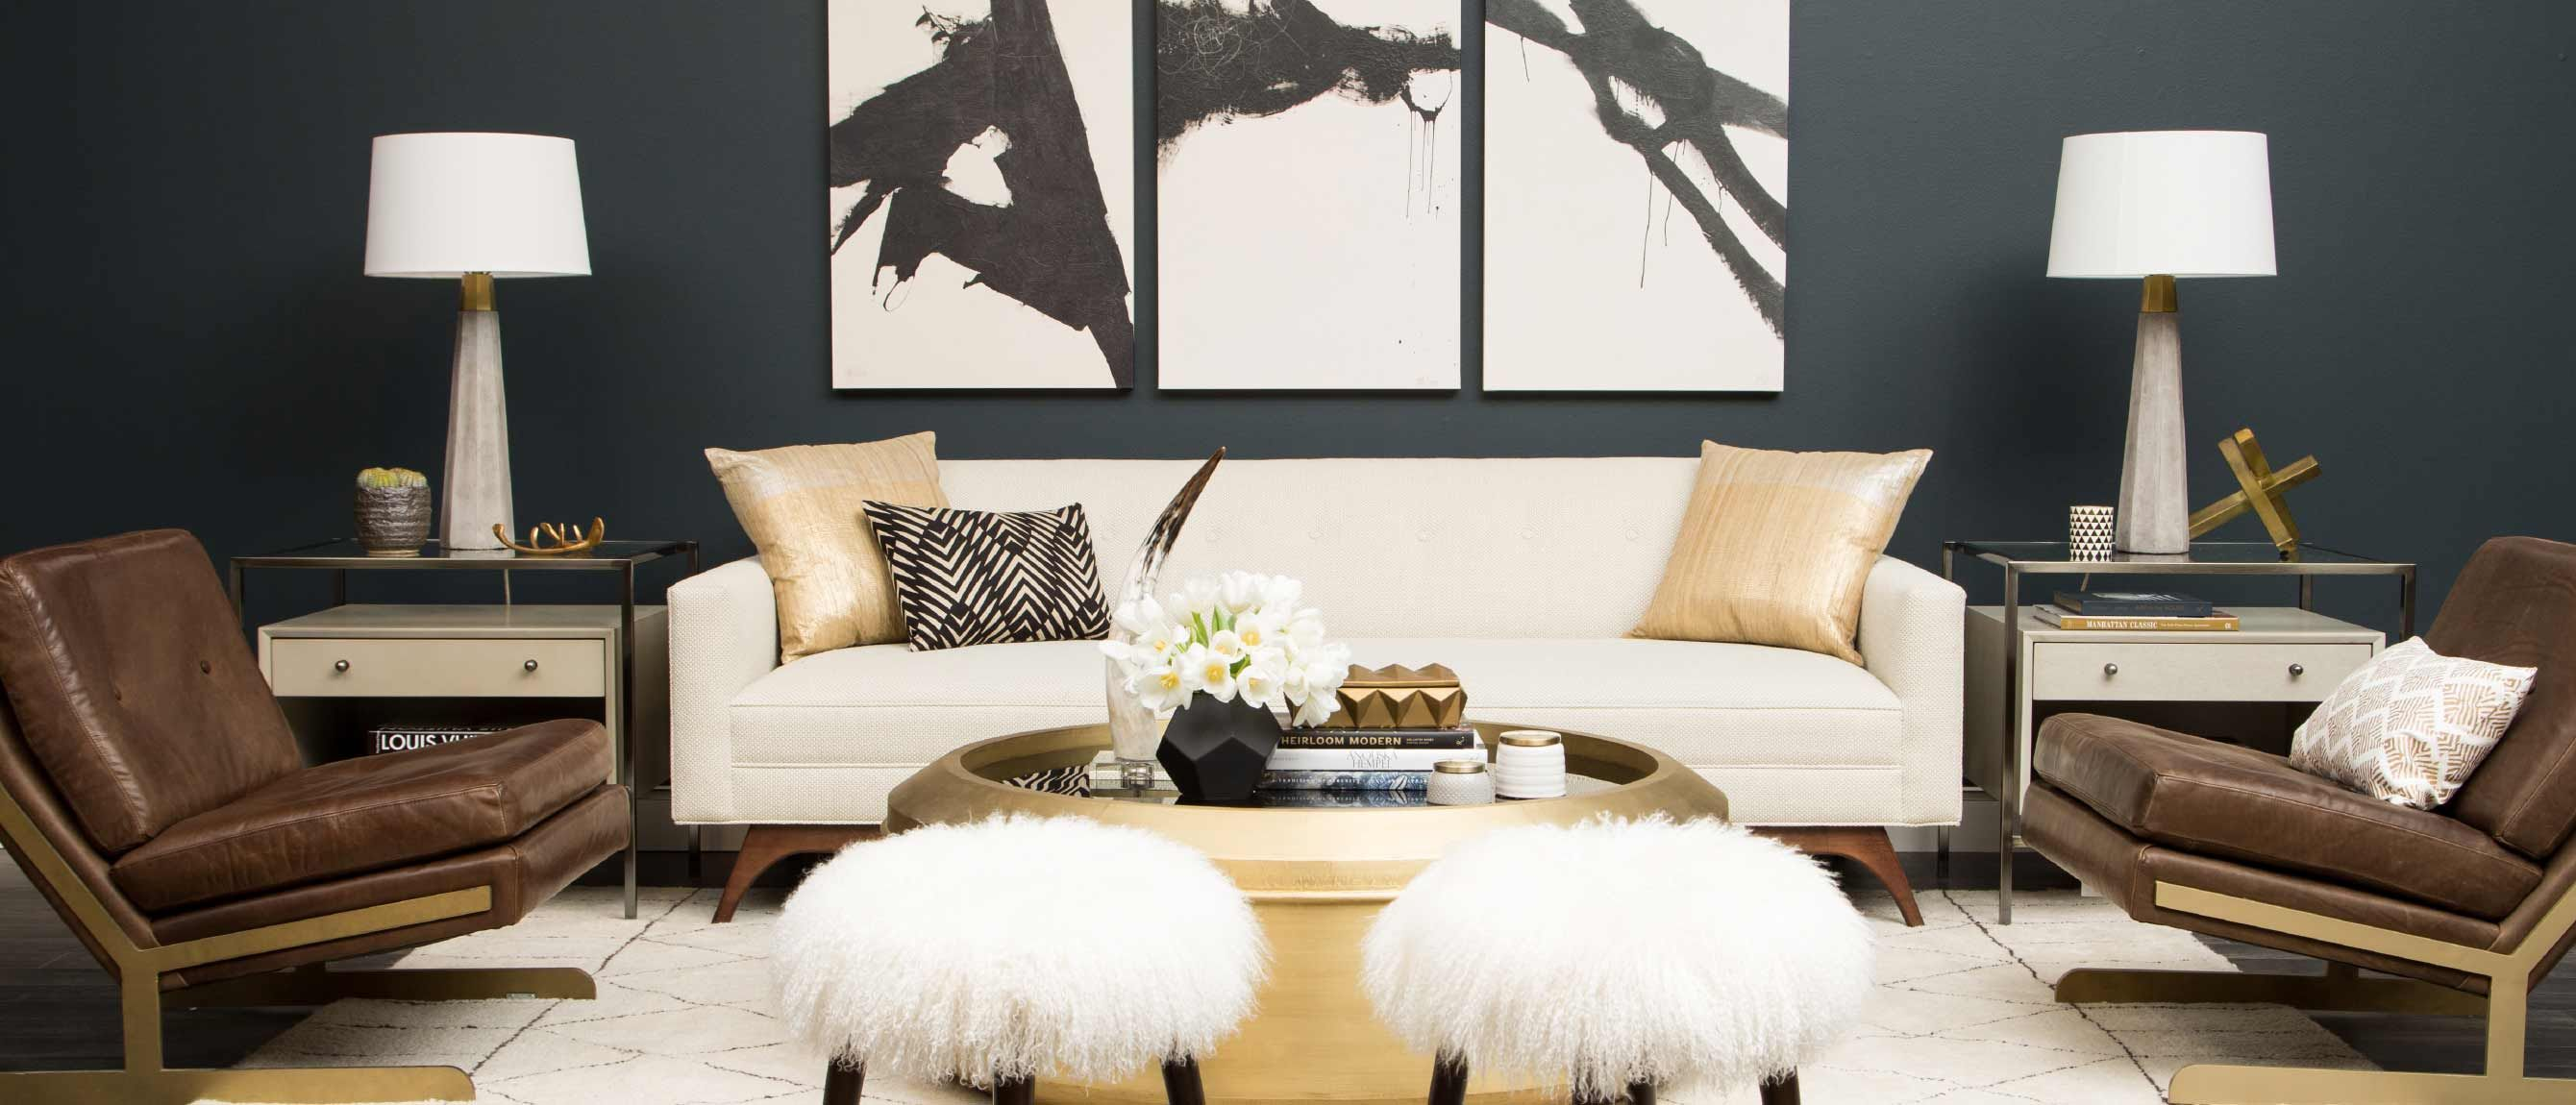 How to find your decorating style - Interior Design Style Quiz What S Your Decorating Style